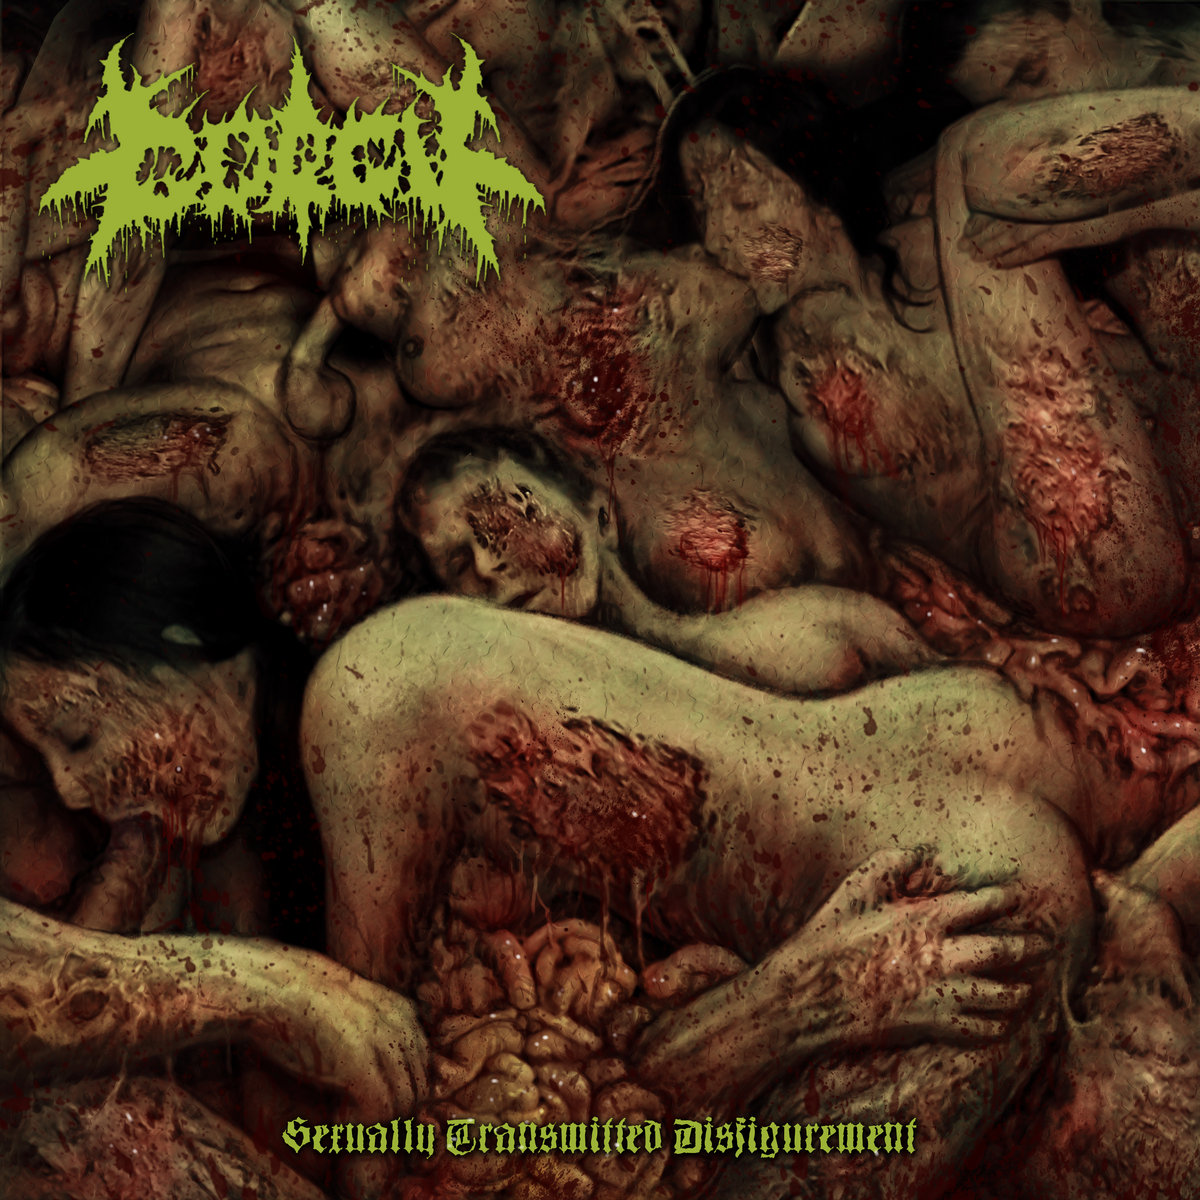 Gorgy - Sexually Transmitted Disfigurement (2018)